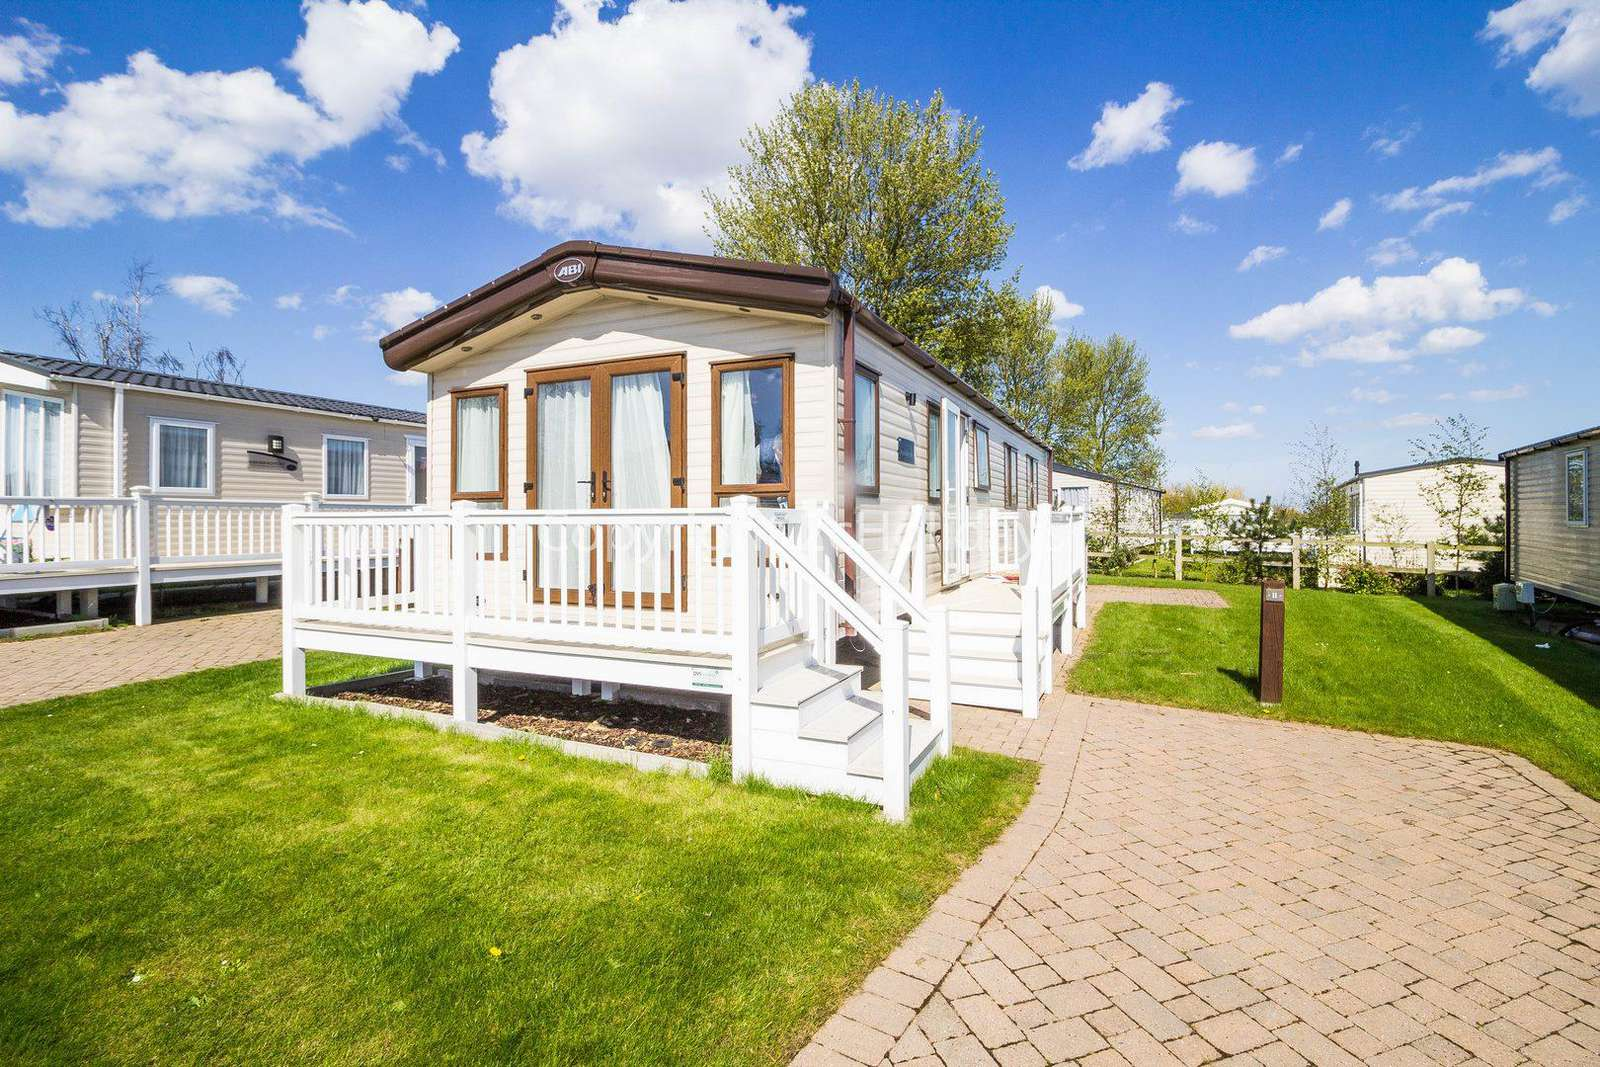 2 bedroom accommodation with decking at the Caister Haven Holiday Park